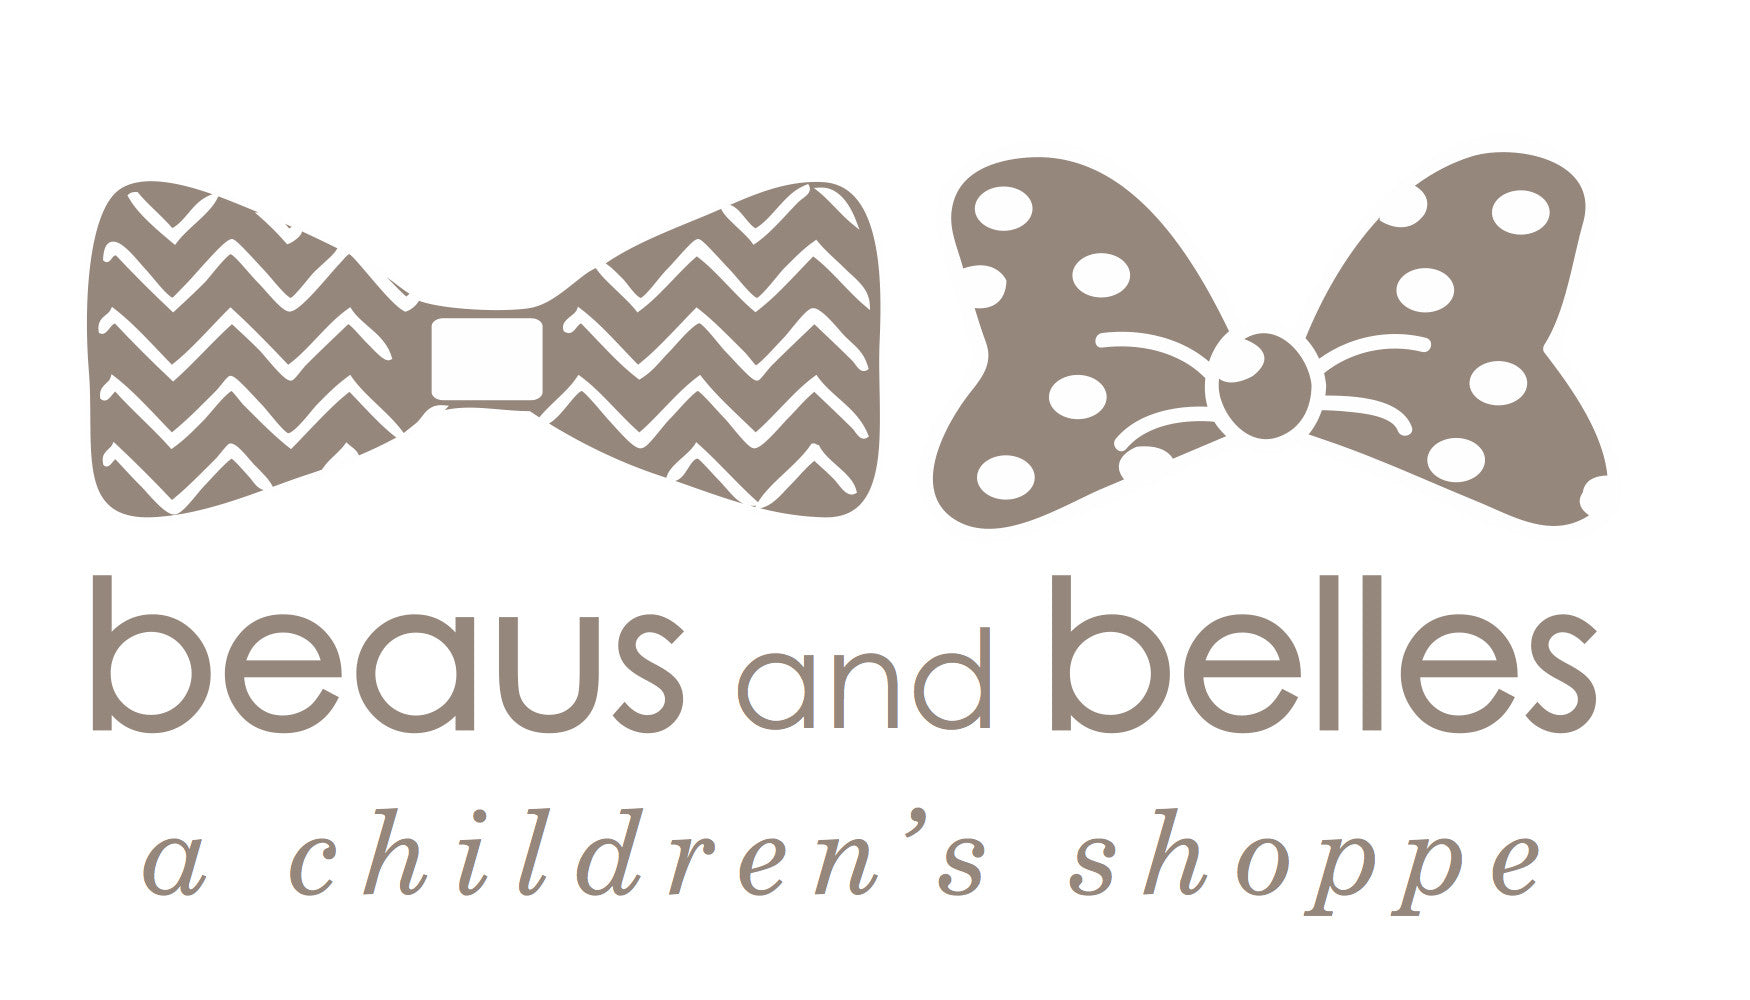 Beaus and Belles    a children's shoppe